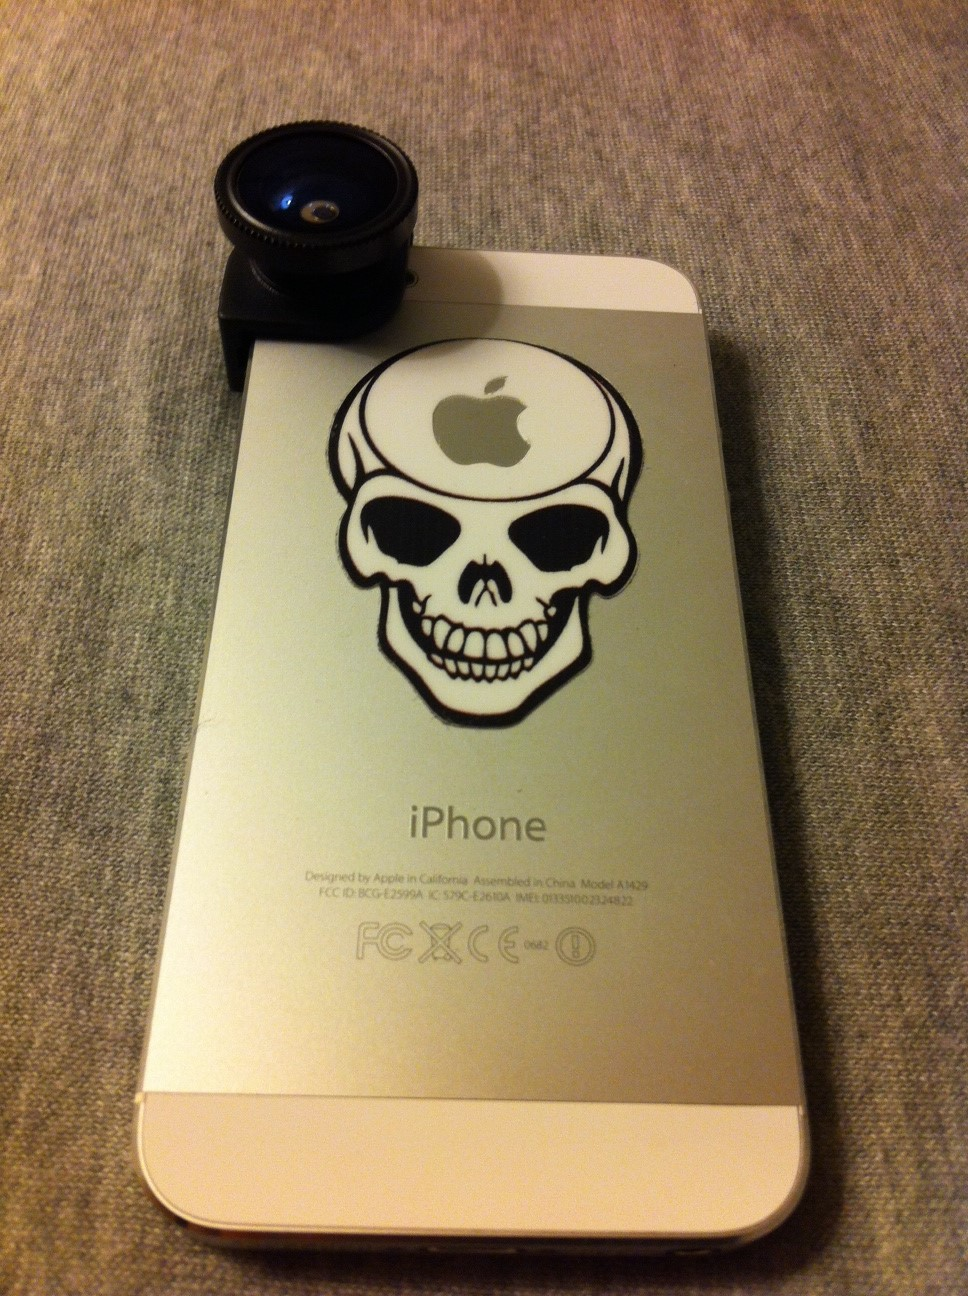 kit objectif iphone 5 arriere - Test : Kit objectif photo 3 en 1 pour iPhone 5